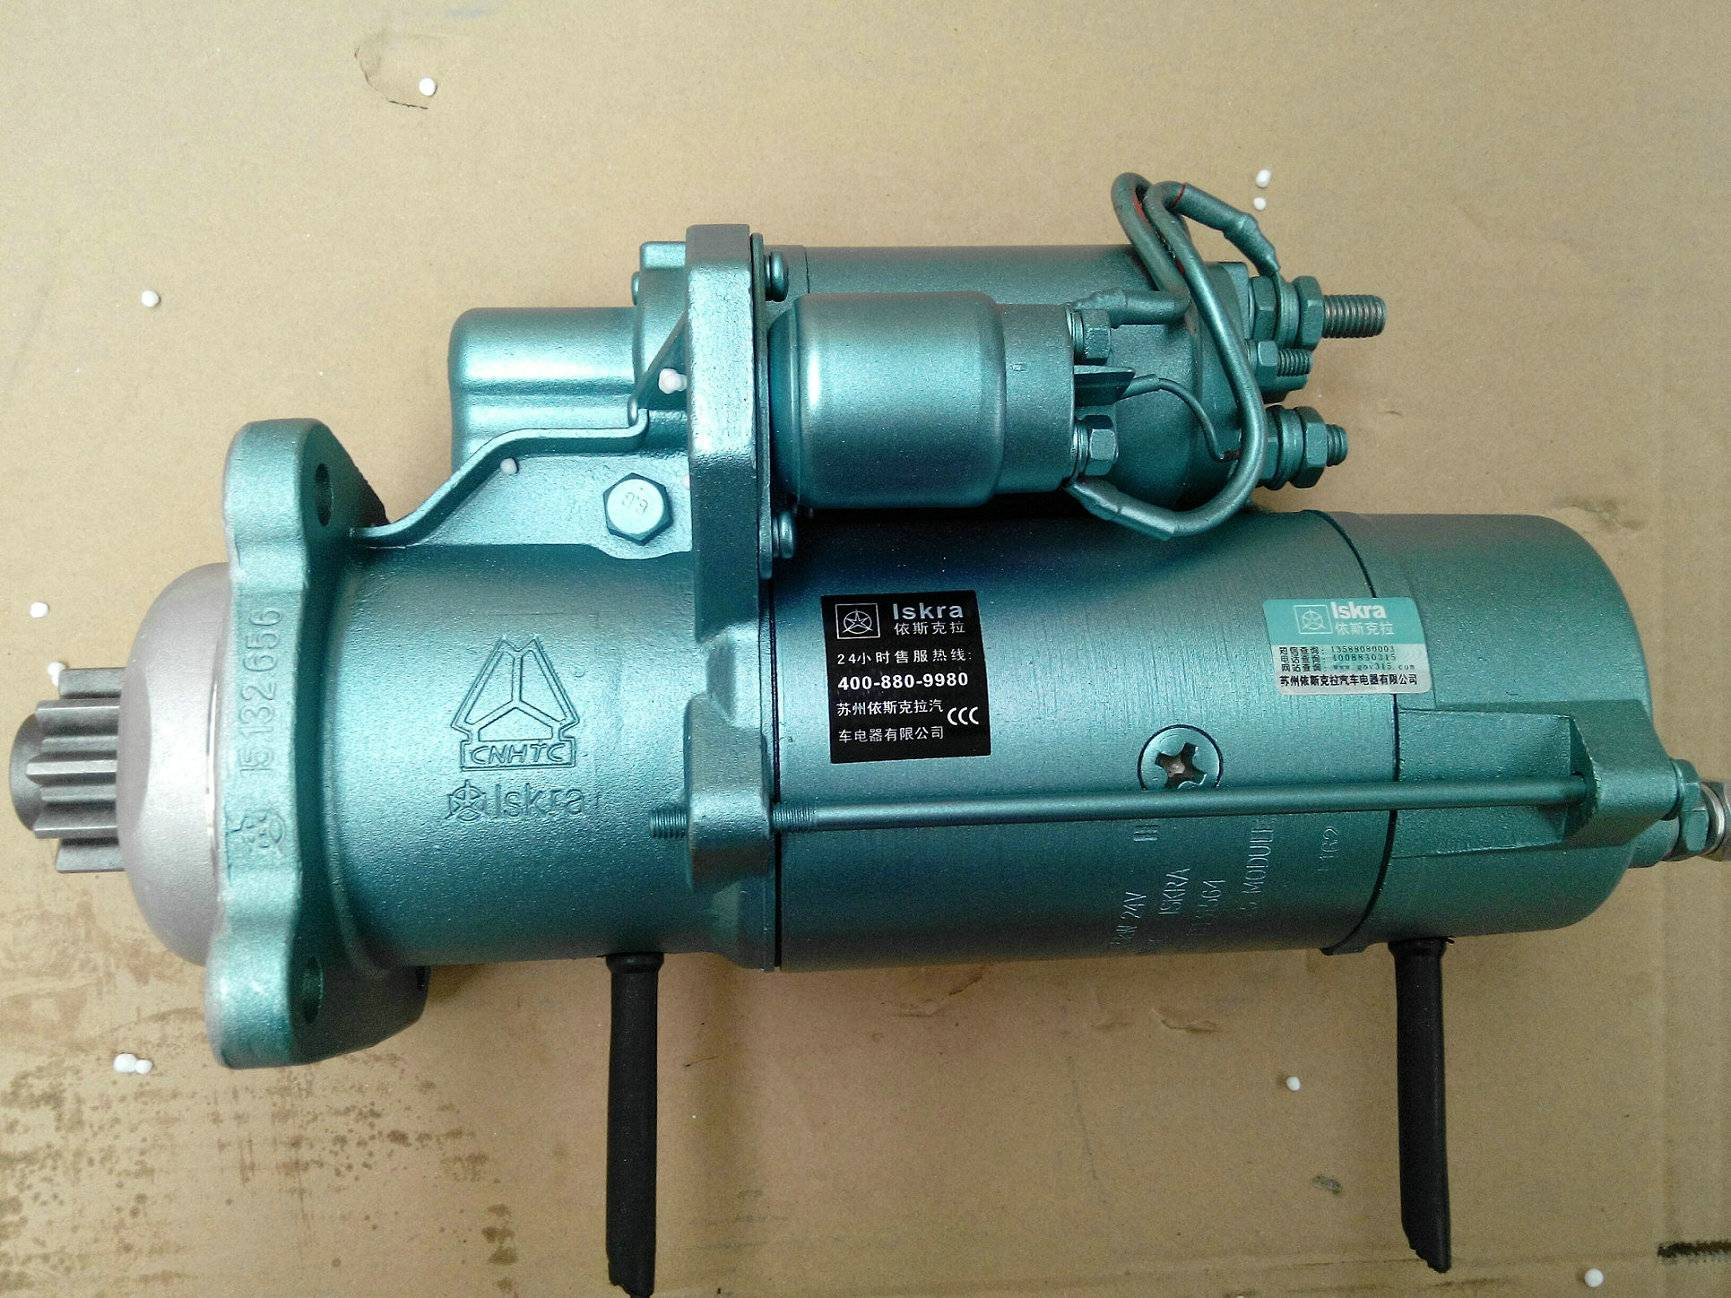 ISKL Geared down starter(10 teeth)